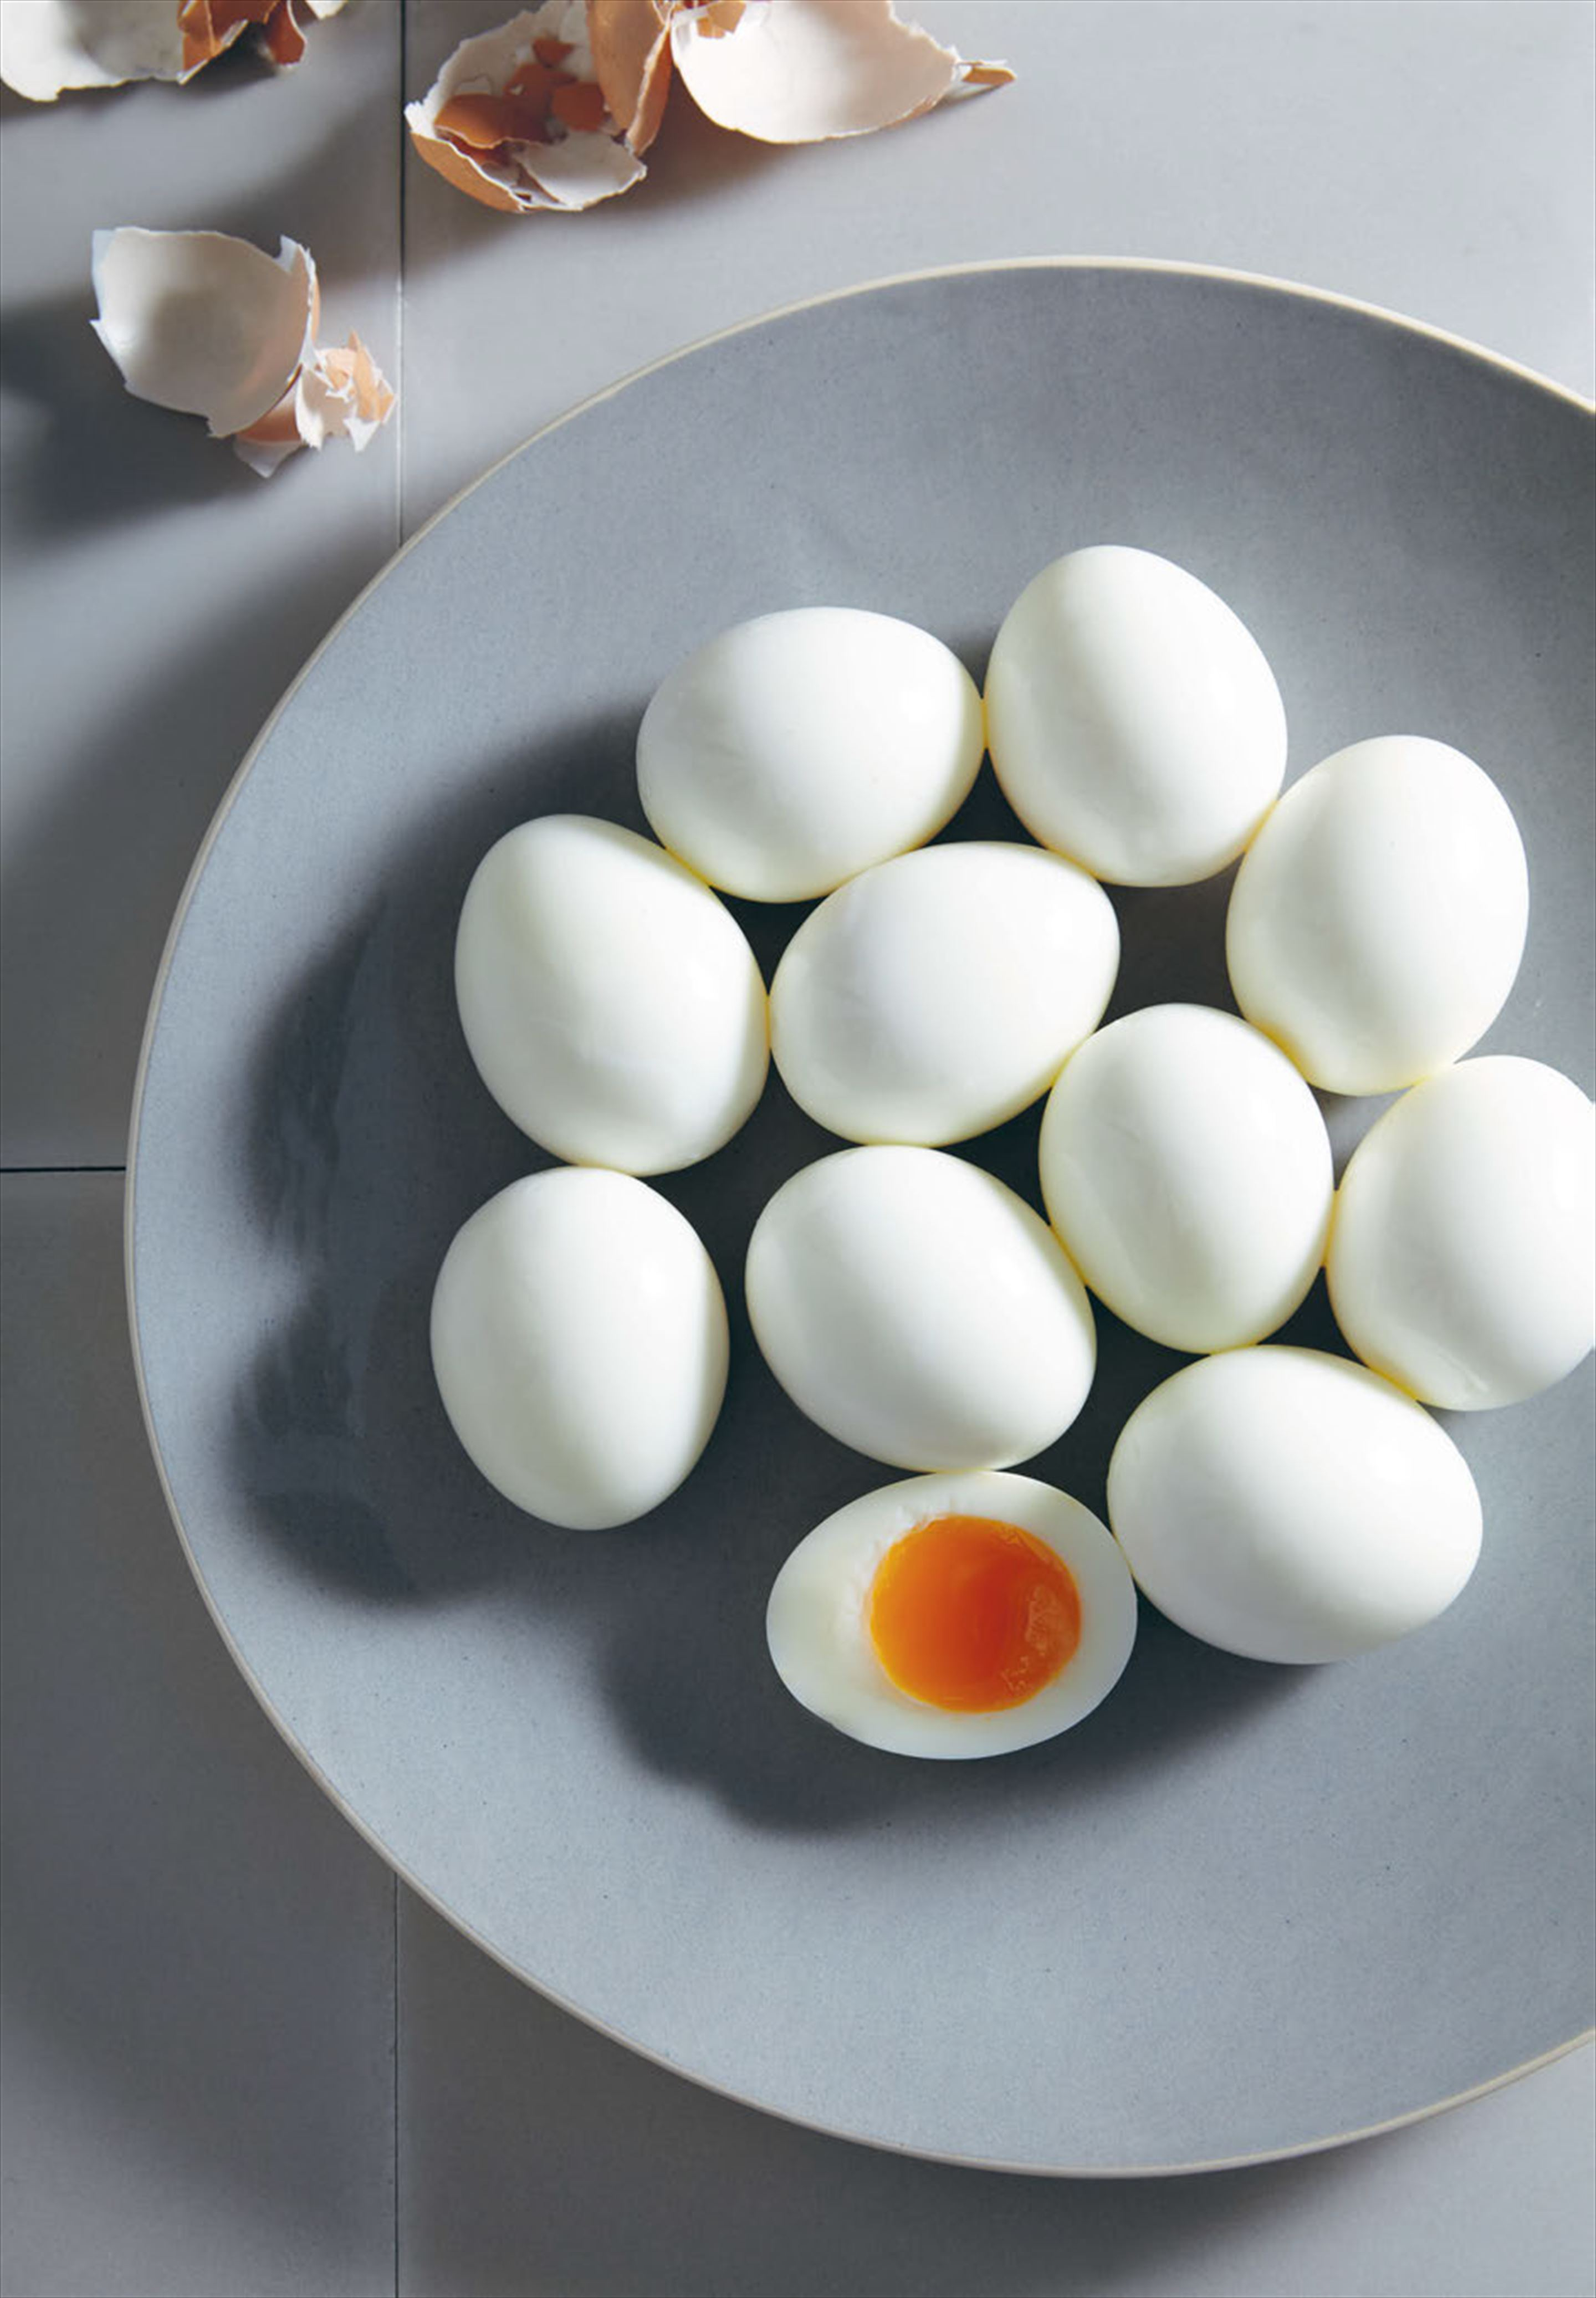 Perfectly boiled eggs